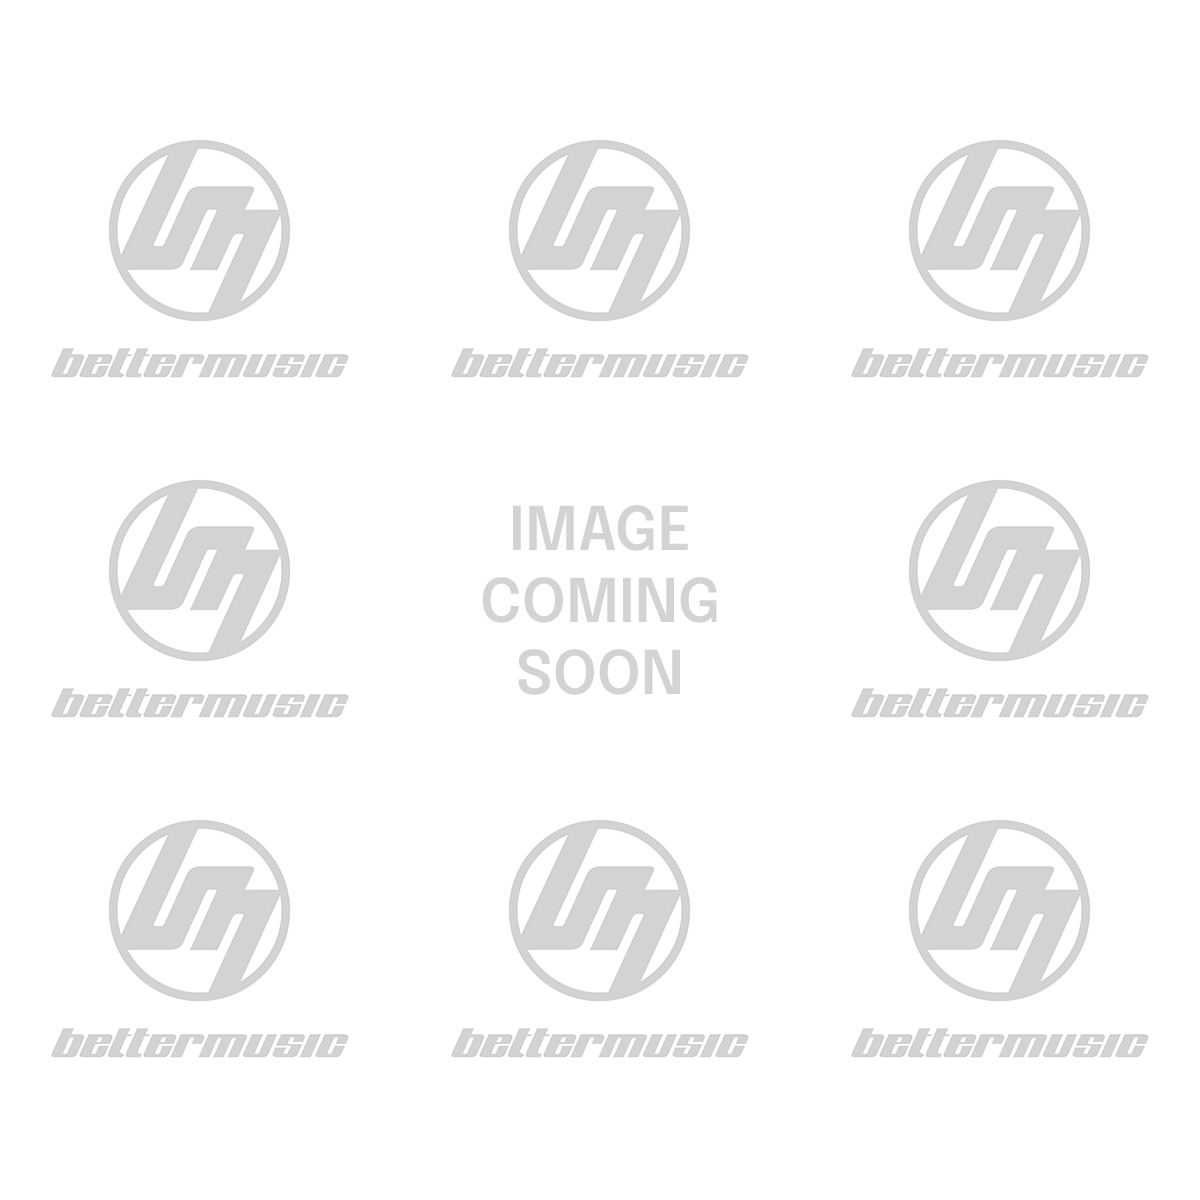 Rode Studio Kit w/ NT-1 Microphone and AI-1 Audio Interface